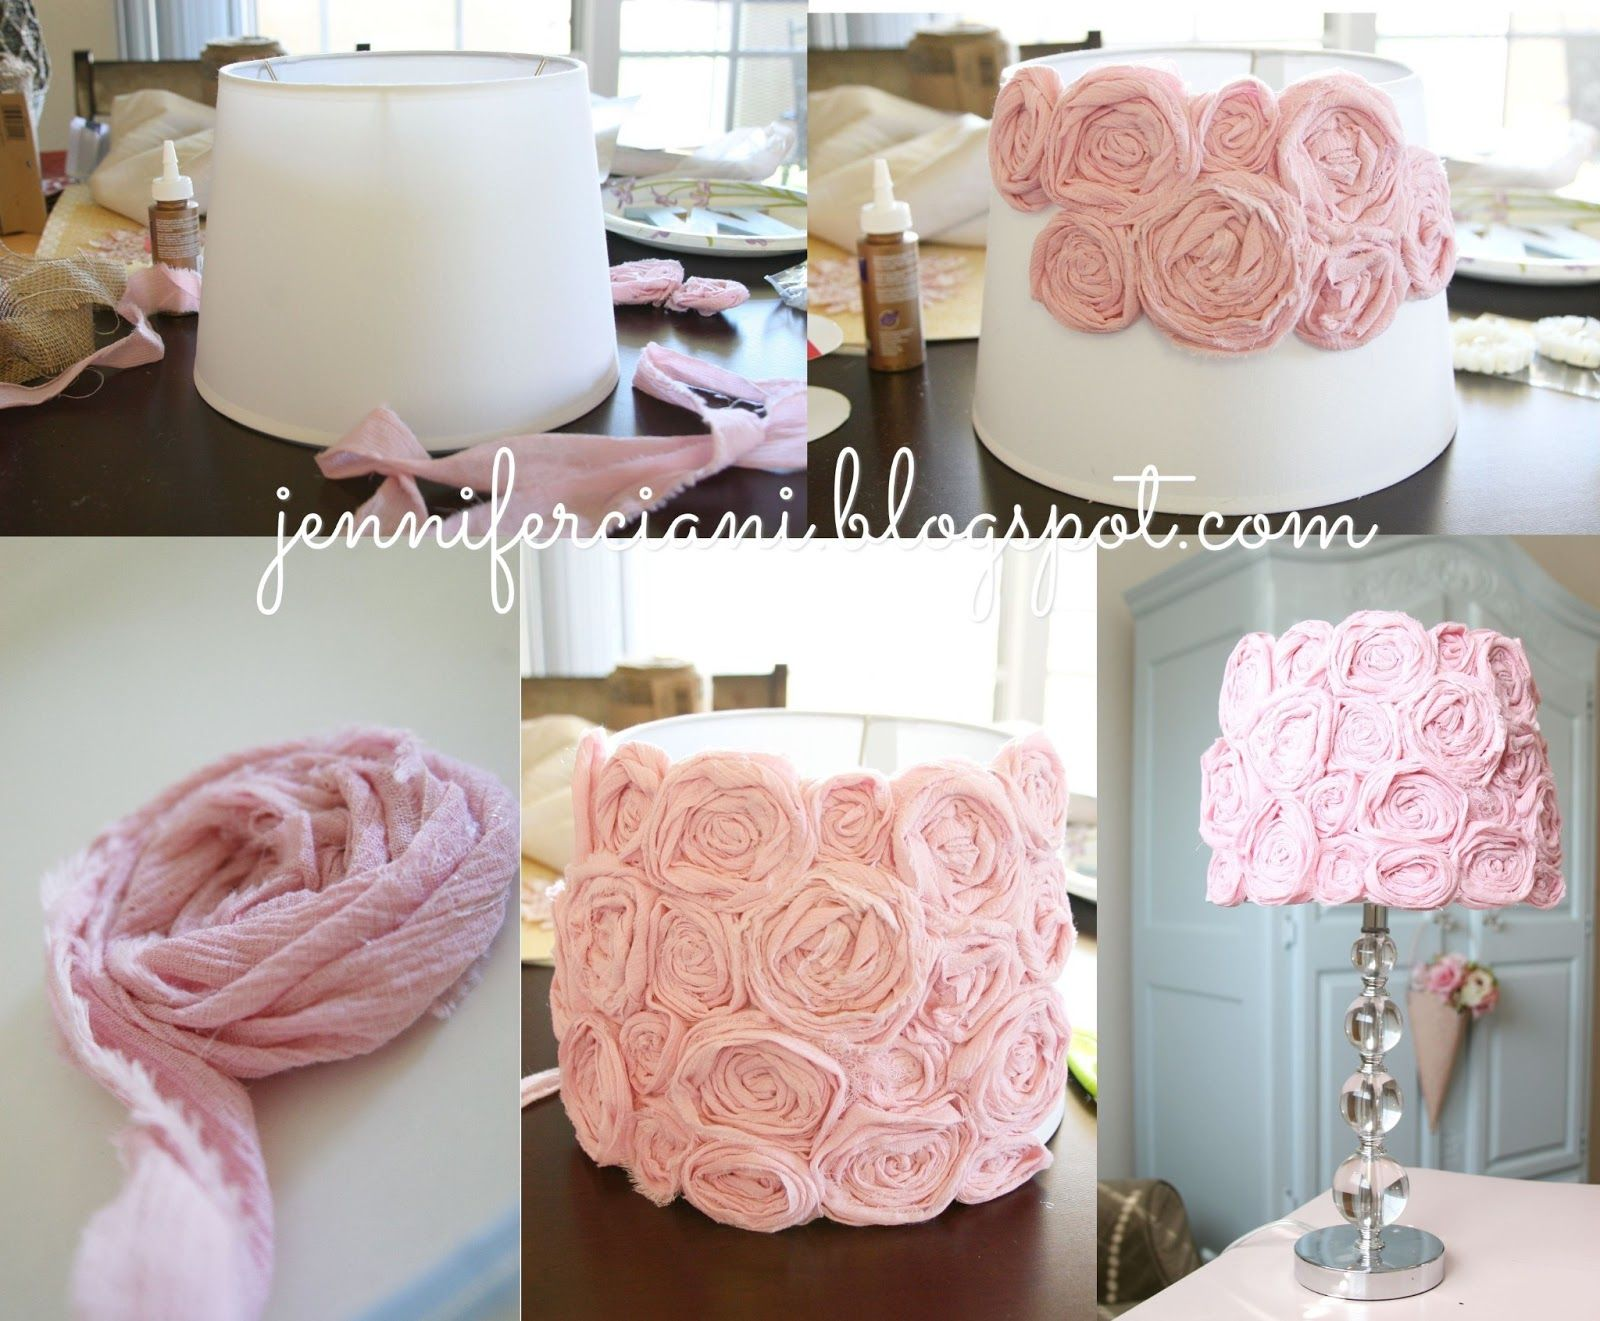 Simply Ciani Shabby Chic Lamp Shade going to make a few of these